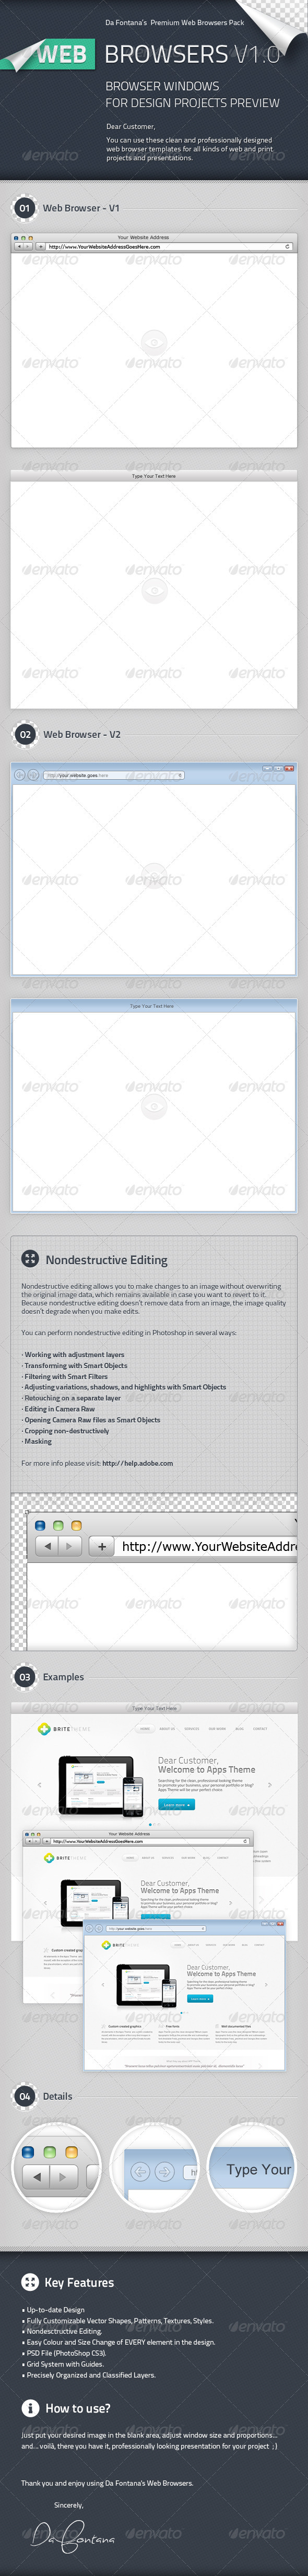 GraphicRiver Web Browser Templates 2350664